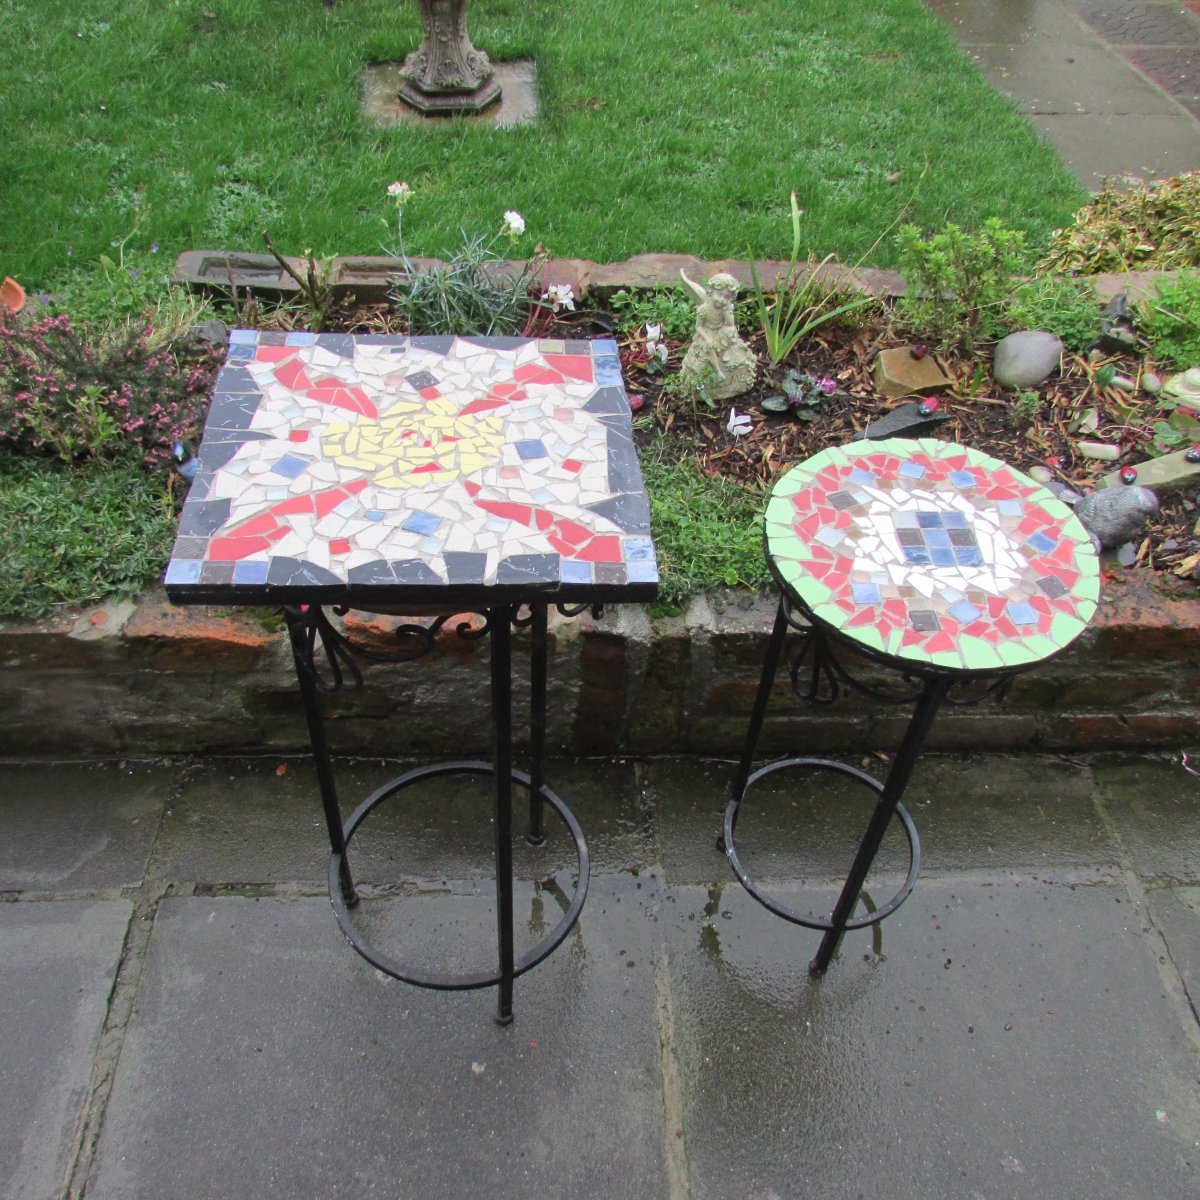 How to Make Mosaic Designs With Ceramic Tiles for Garden Tables